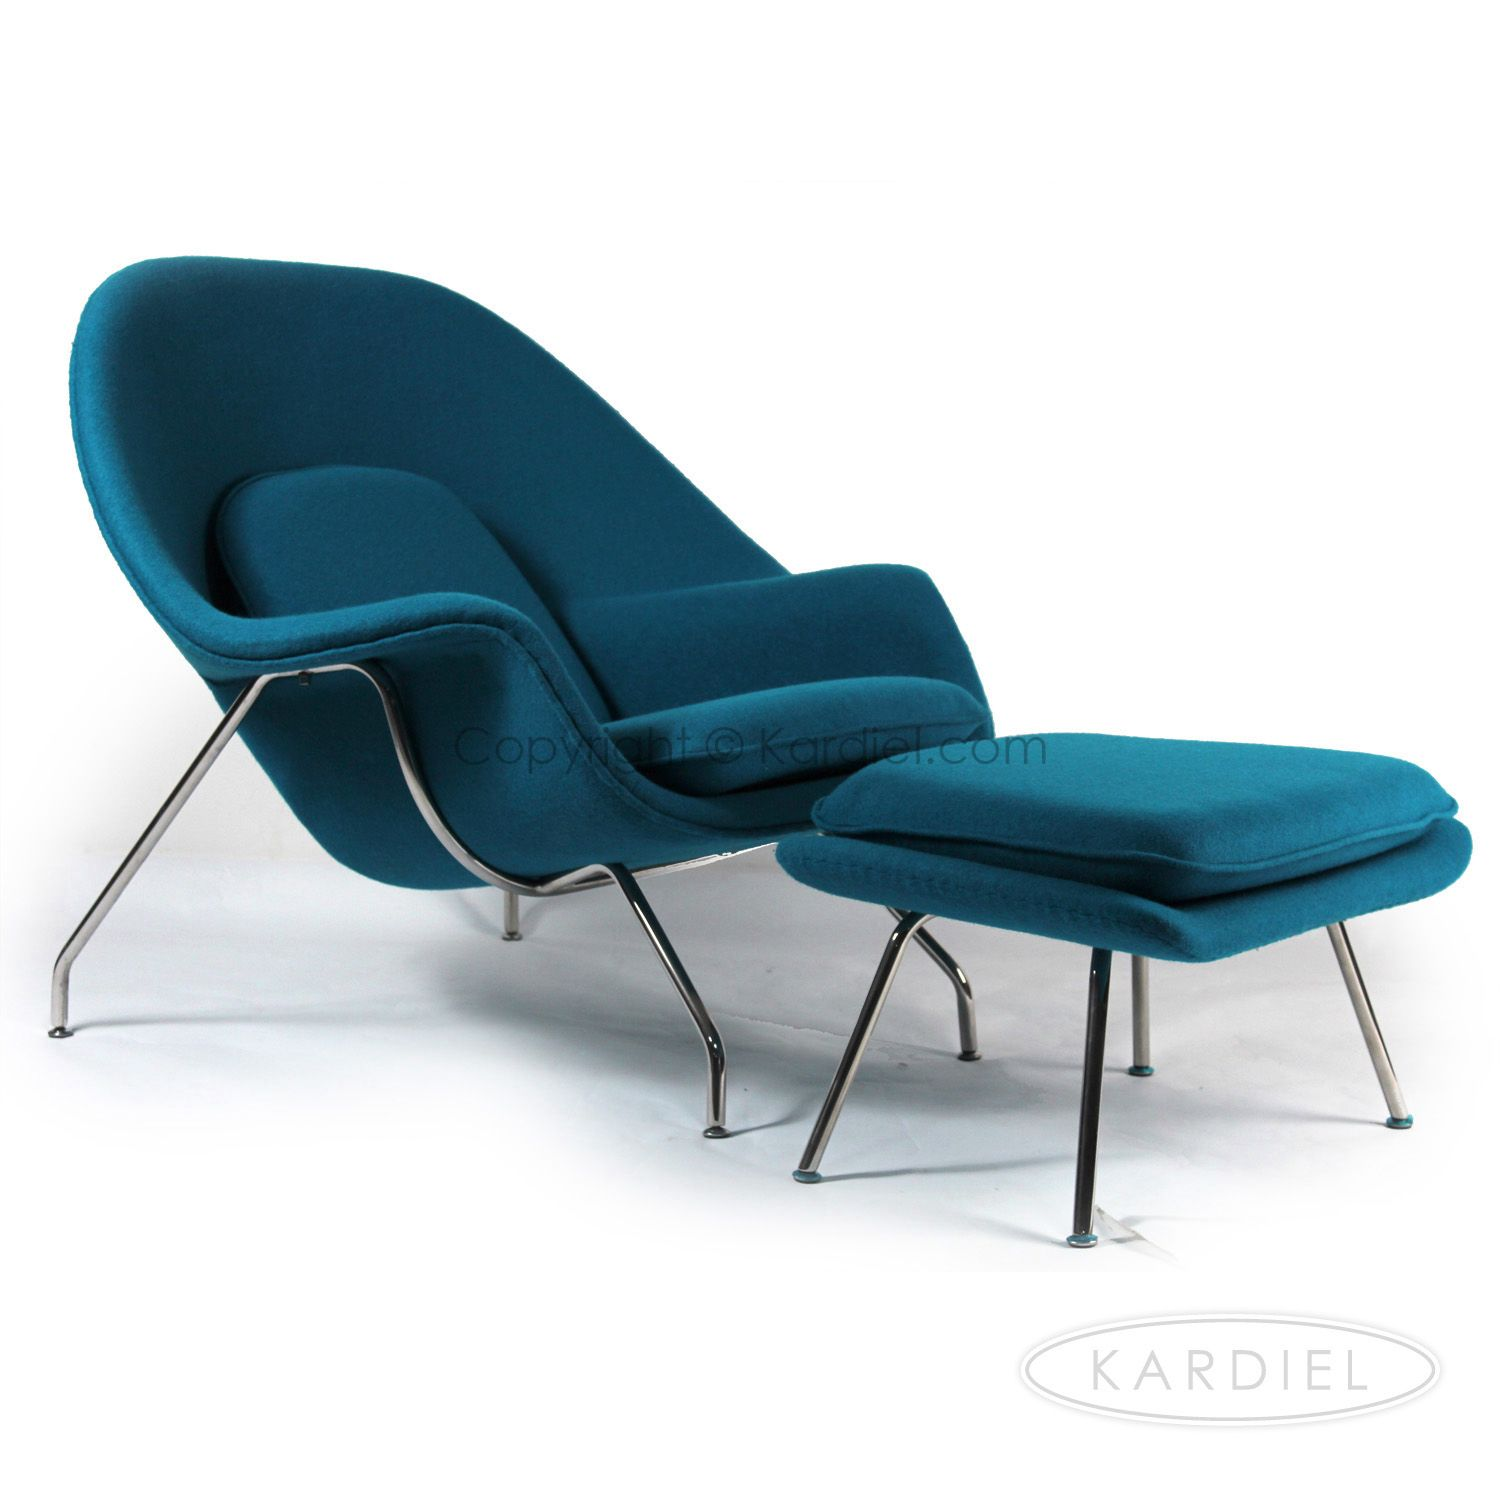 Womb Chair U0026 Ottoman, Caribbean Danish Cashmere Wool |kardiel 799 Total